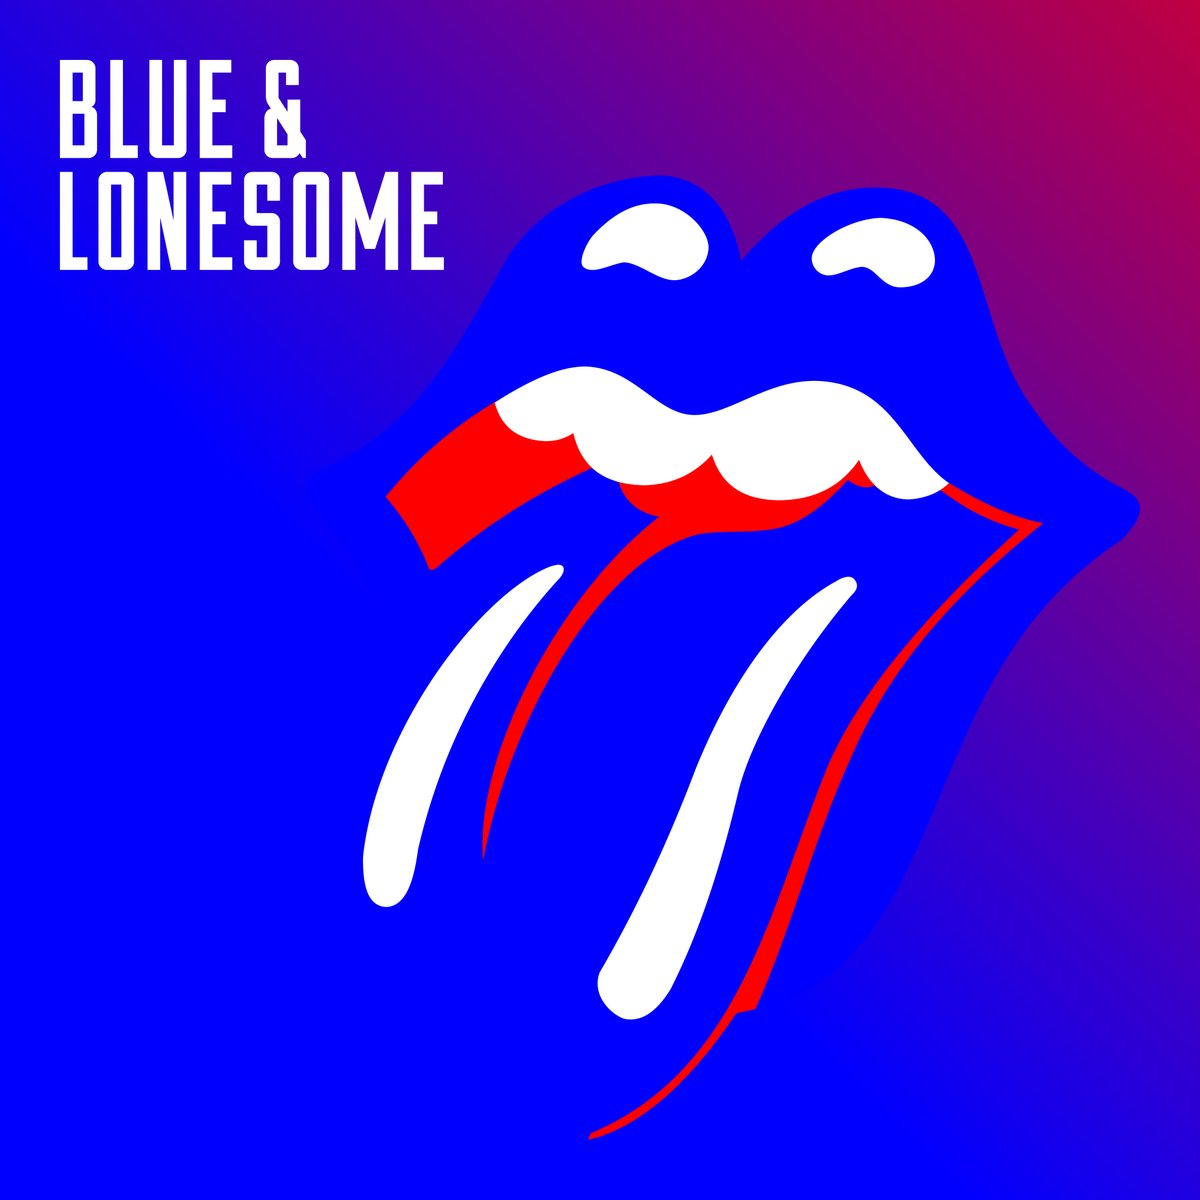 The rolling stones bring a heavy touch to blue and lonesome the rolling stones bring a heavy touch to blue and lonesome rolling stones blue and lonesome static and feedback biocorpaavc